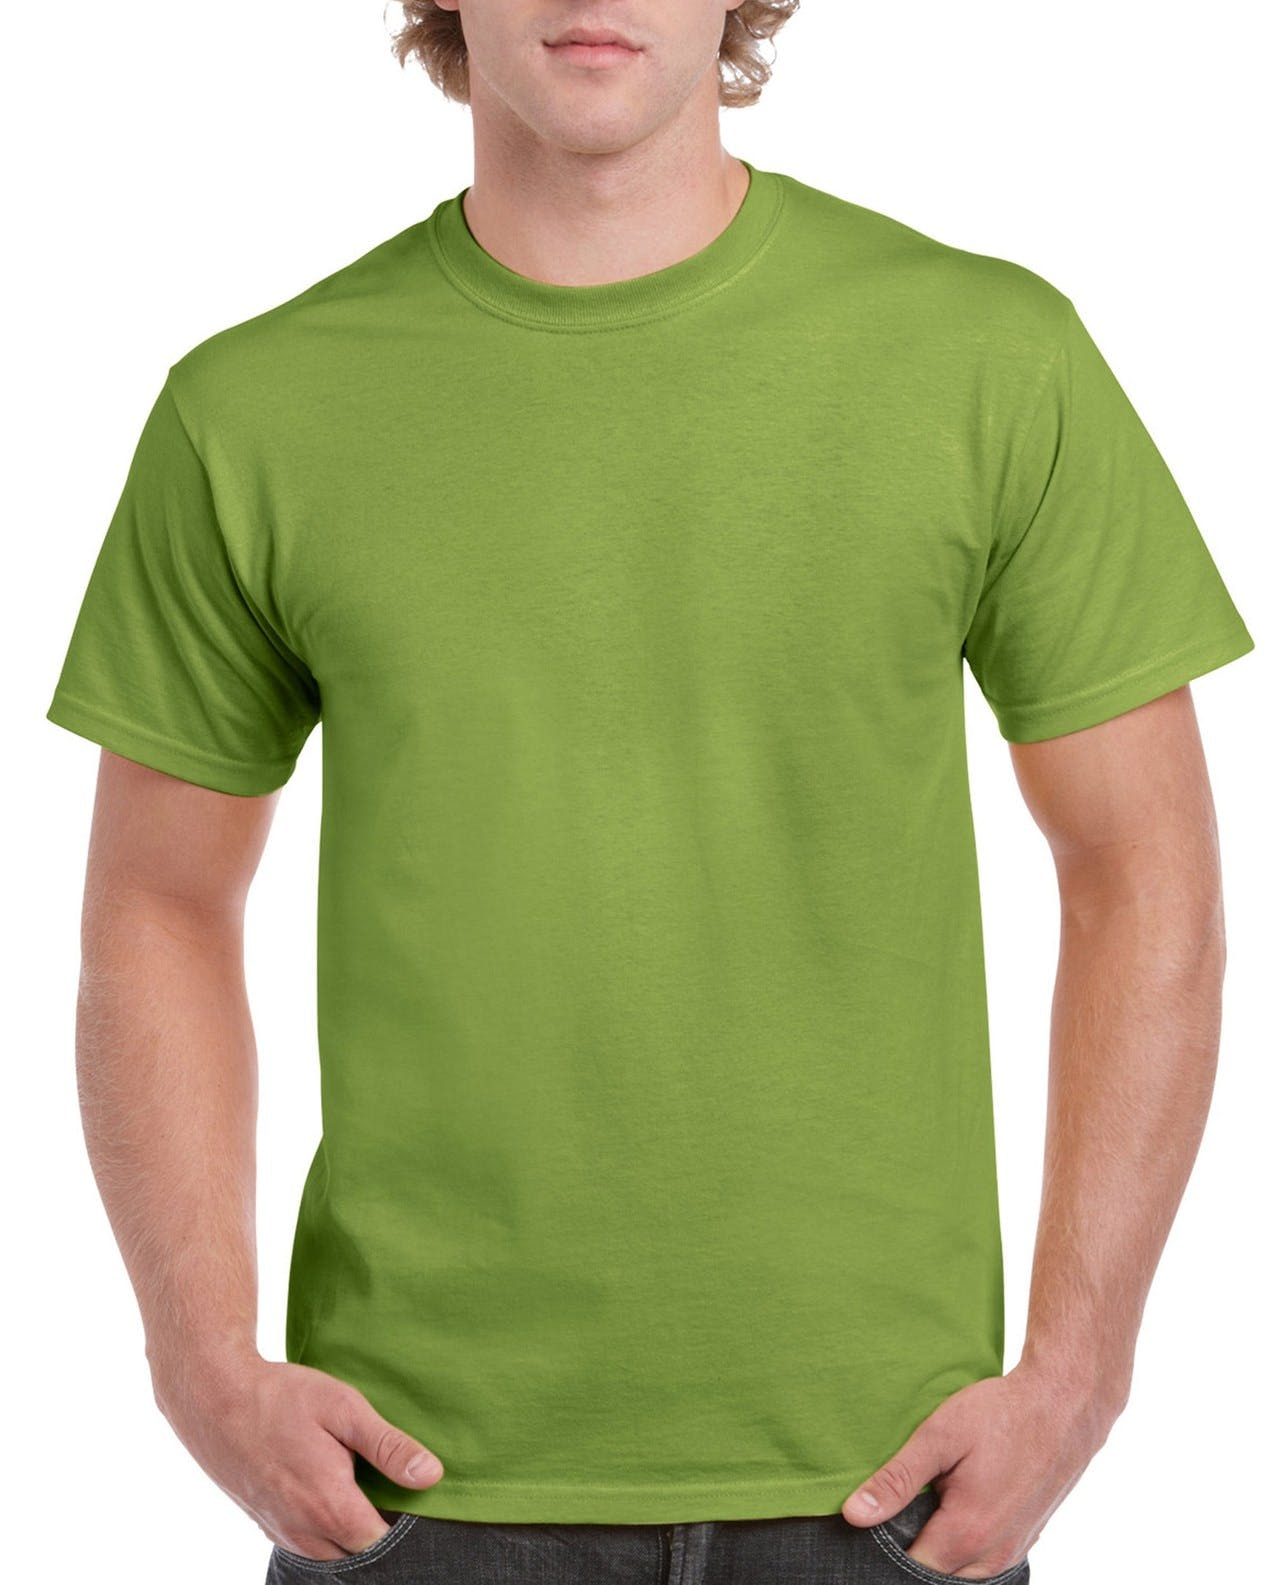 Gildan® Ultra Cotton® Adult T-Shirt Promotional apparel sold by Kevins Worldwide